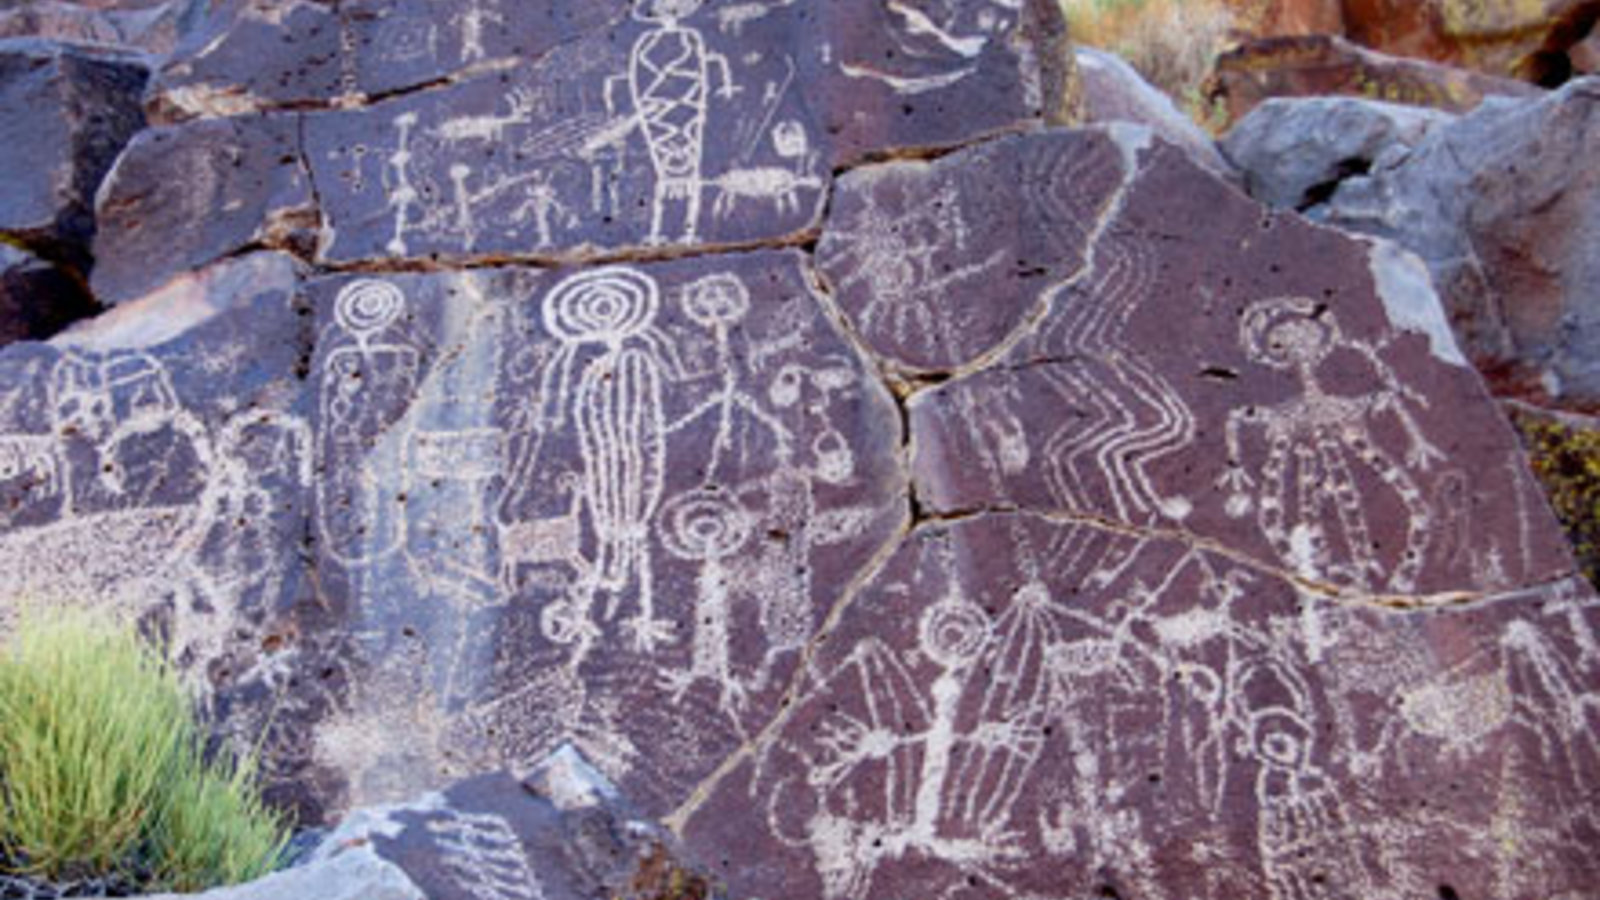 Talking Stone: Rock Art of the Cosos